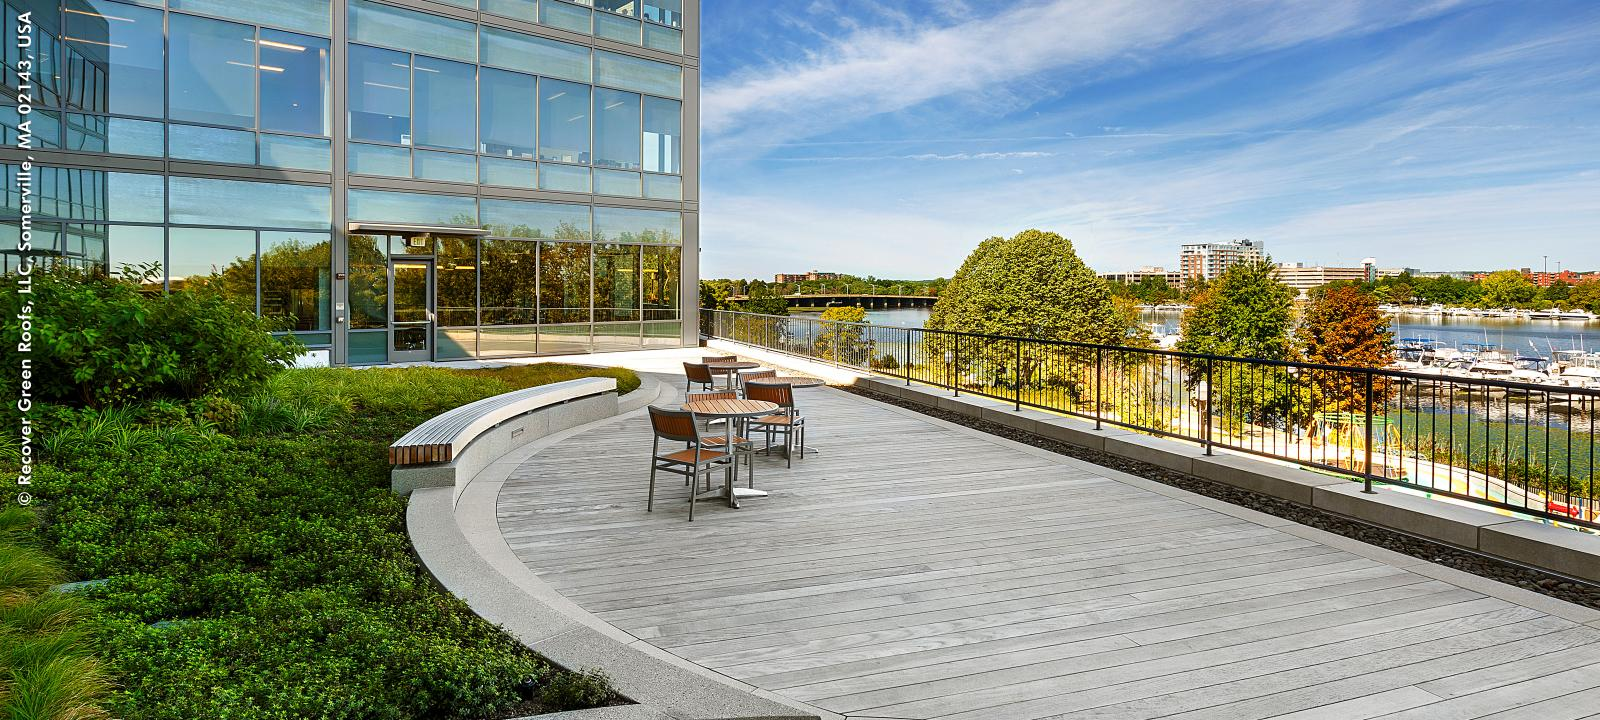 Office Building Somerville Ma Zinco Green Roof Systems